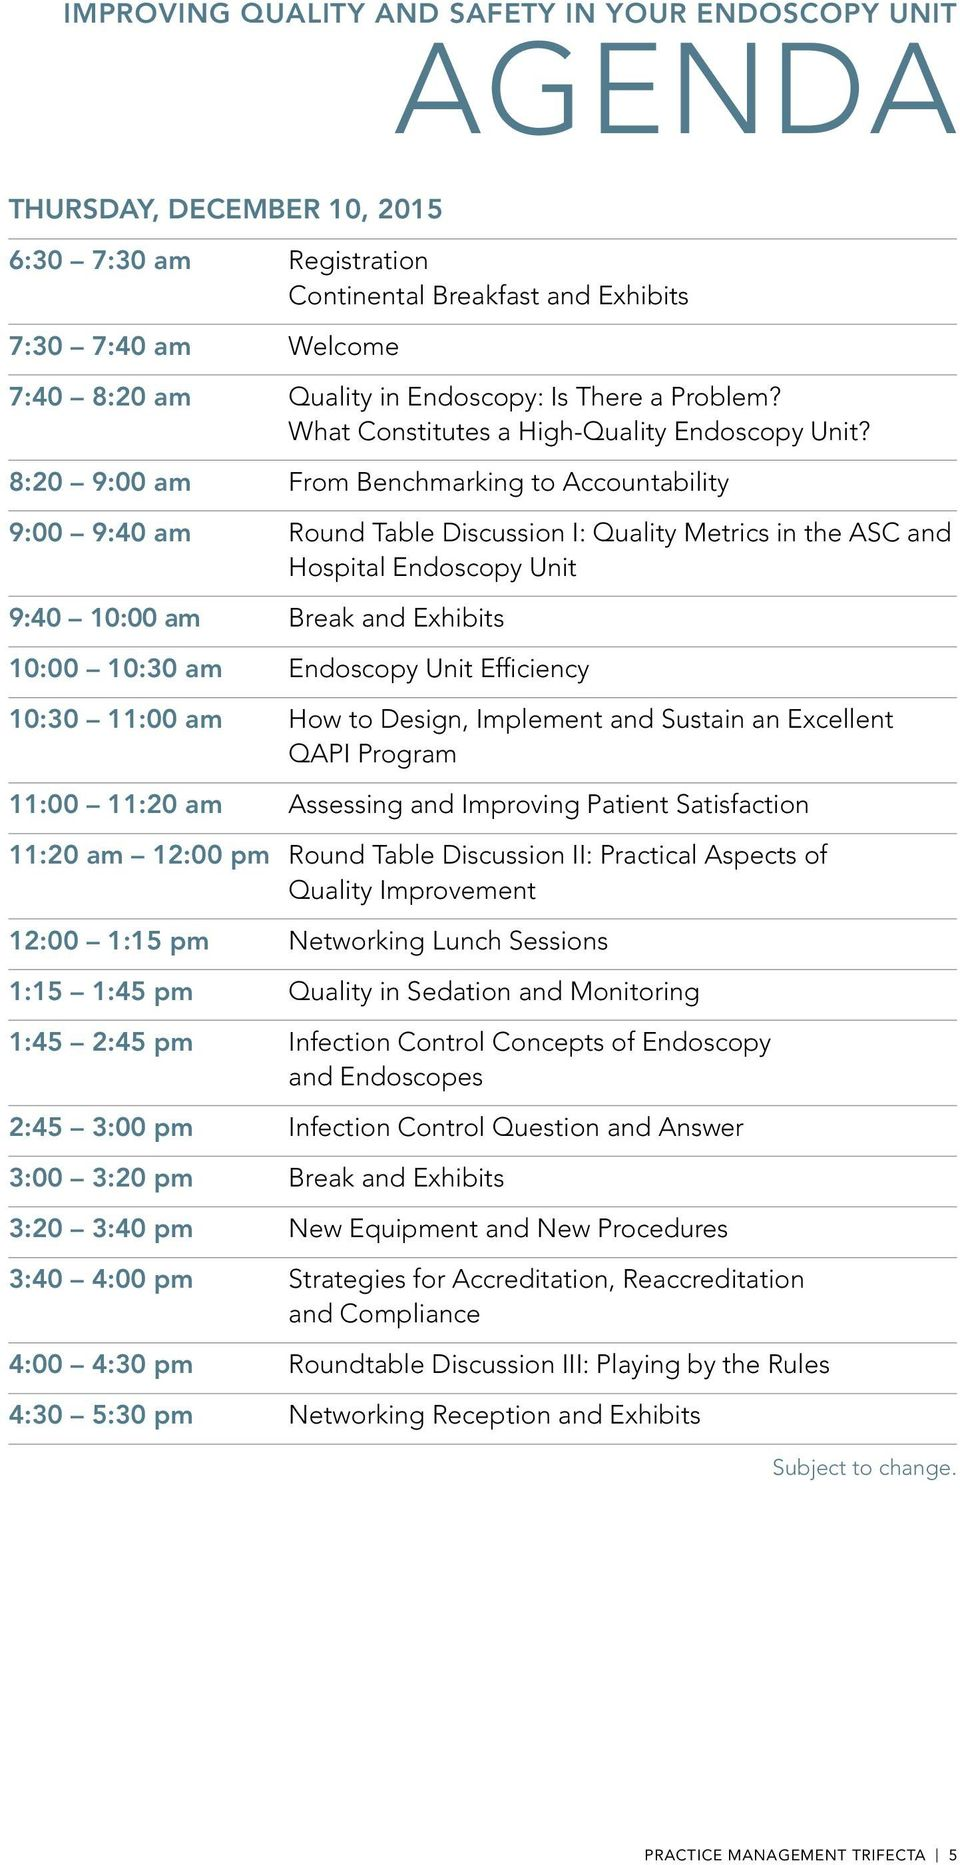 8:20 9:00 am From Benchmarking to Accountability 9:00 9:40 am Round Table Discussion I: Quality Metrics in the ASC and Hospital Endoscopy Unit 9:40 10:00 am Break and Exhibits 10:00 10:30 am